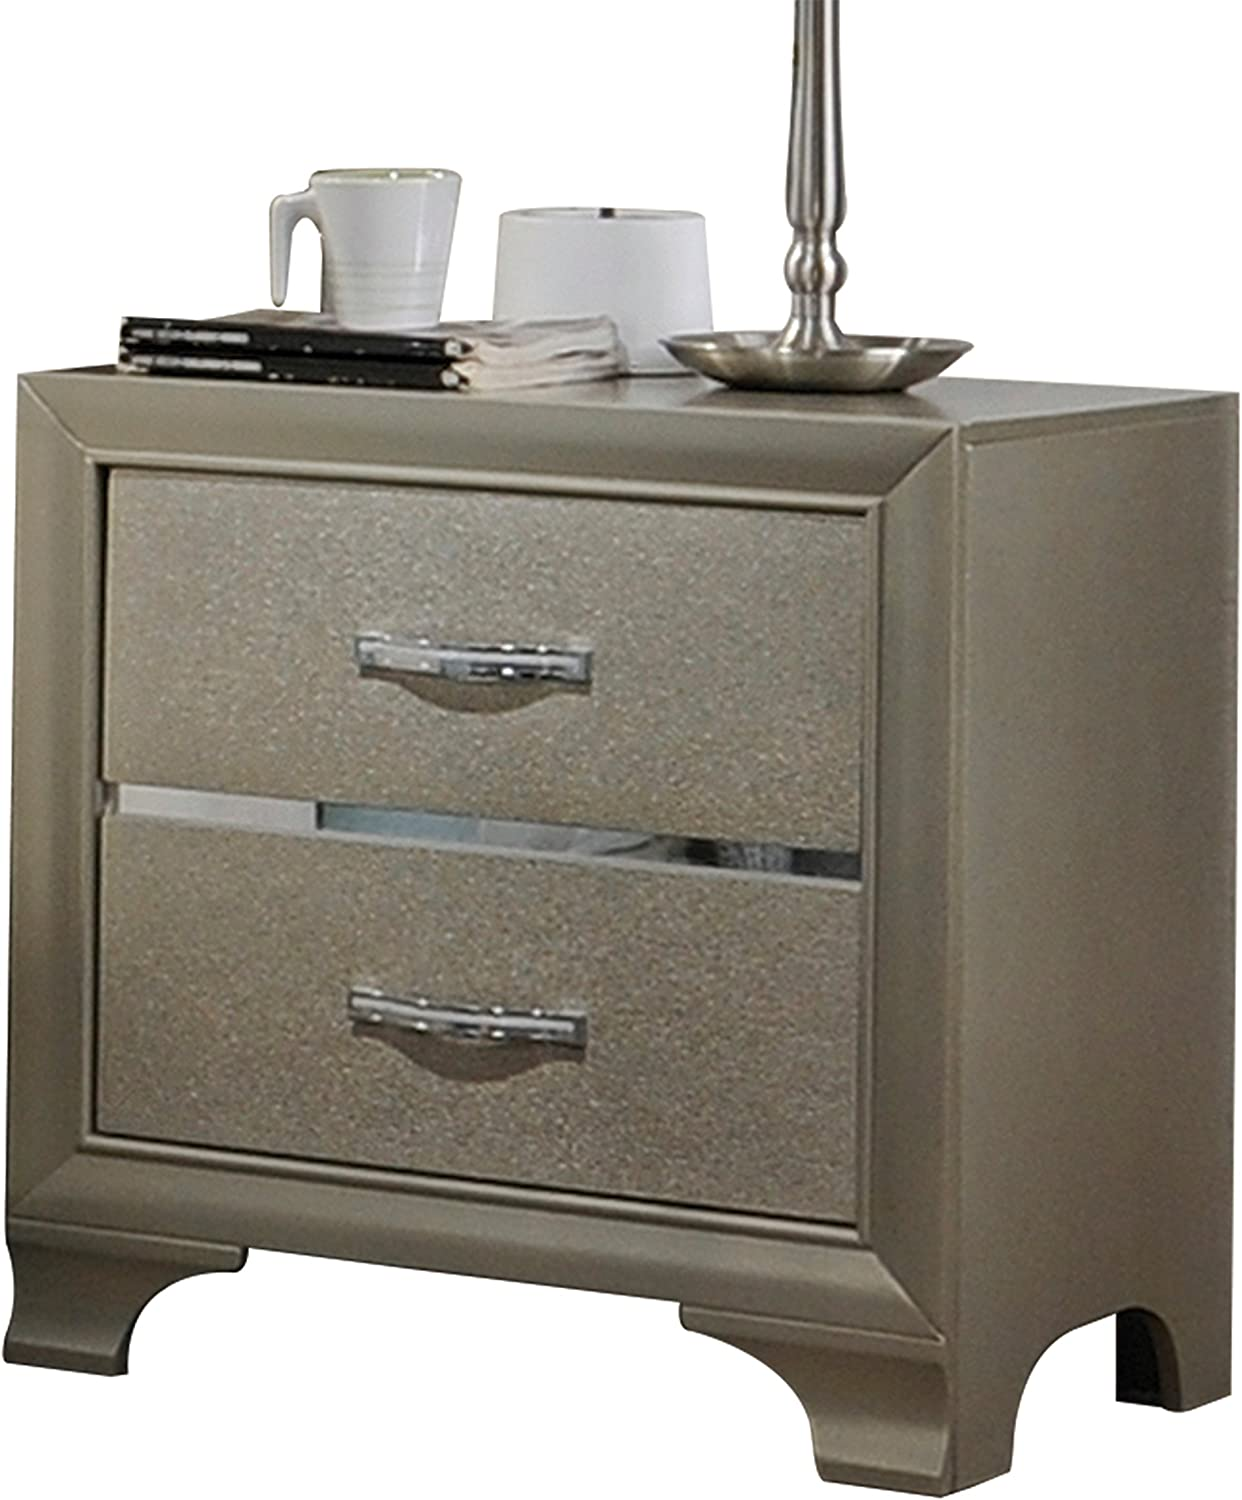 ACME Furniture 26243 Carine Nightstand, Champagne